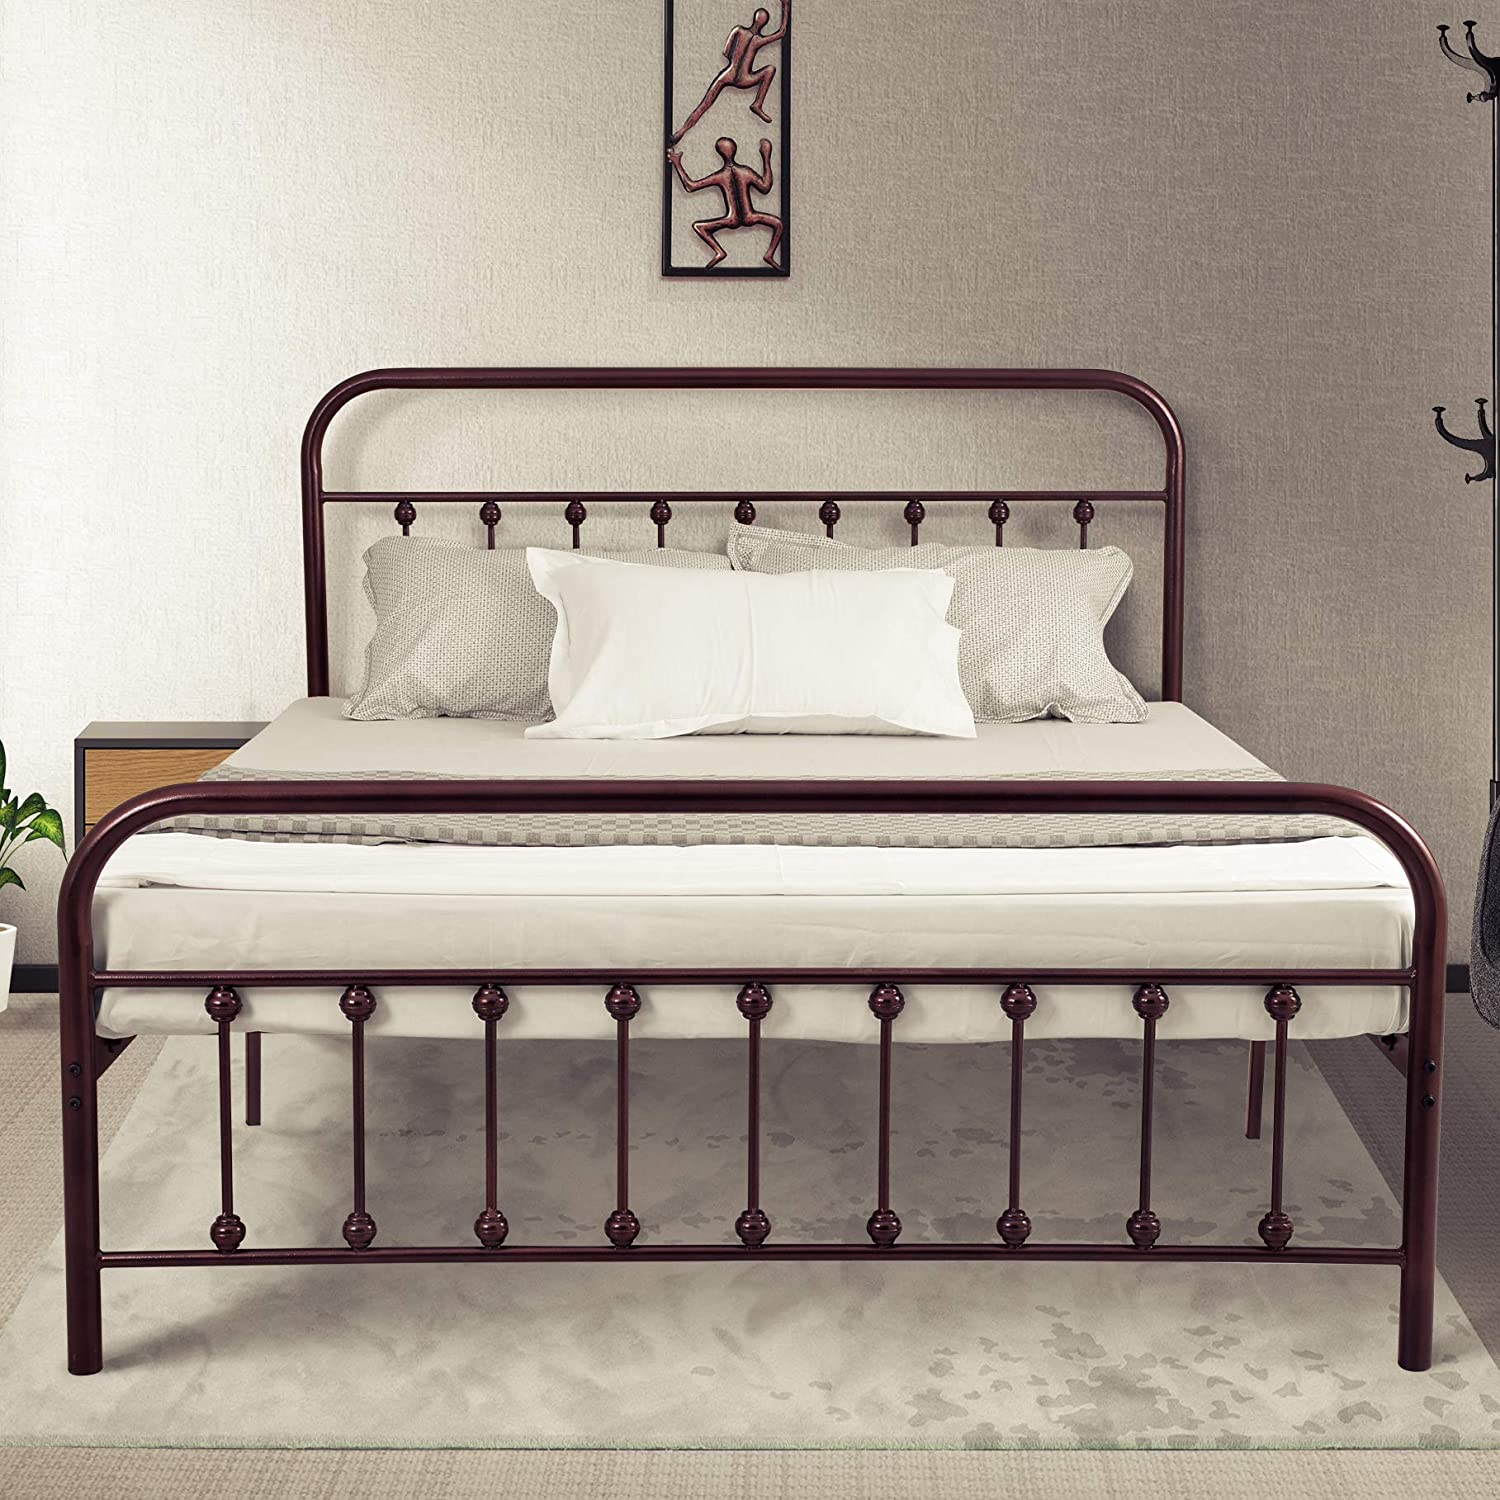 Amazon Com Ambee21 Vintage Queen Metal Bed Frame With Headboard